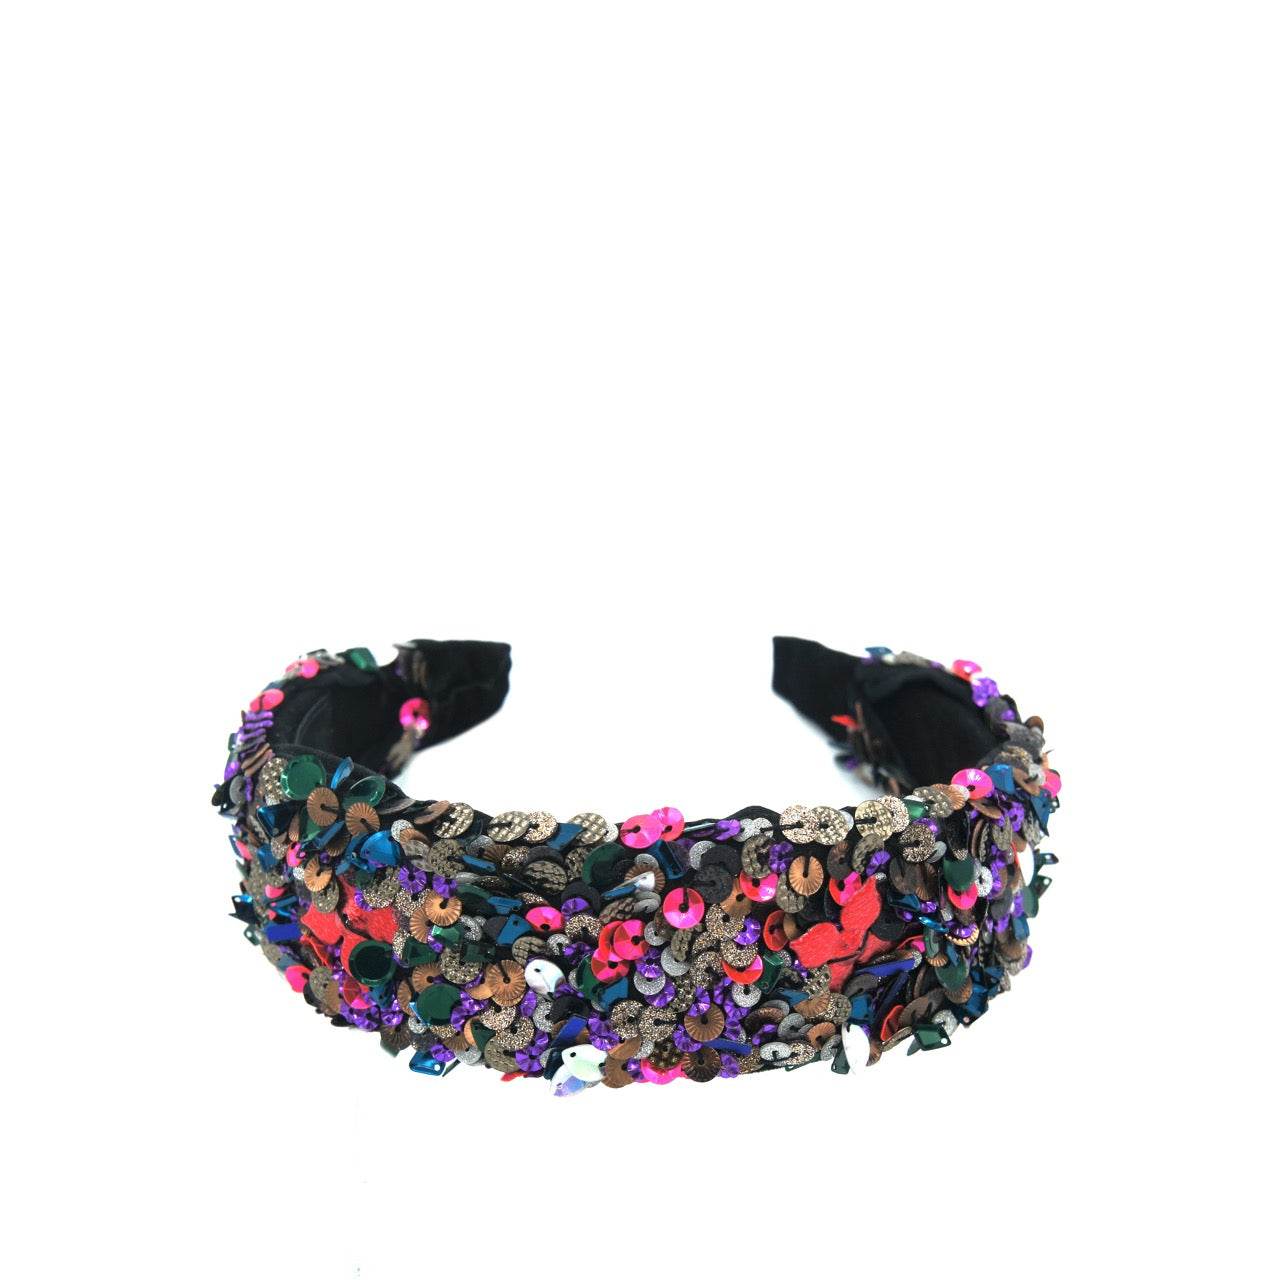 Floral Kitsch Headband